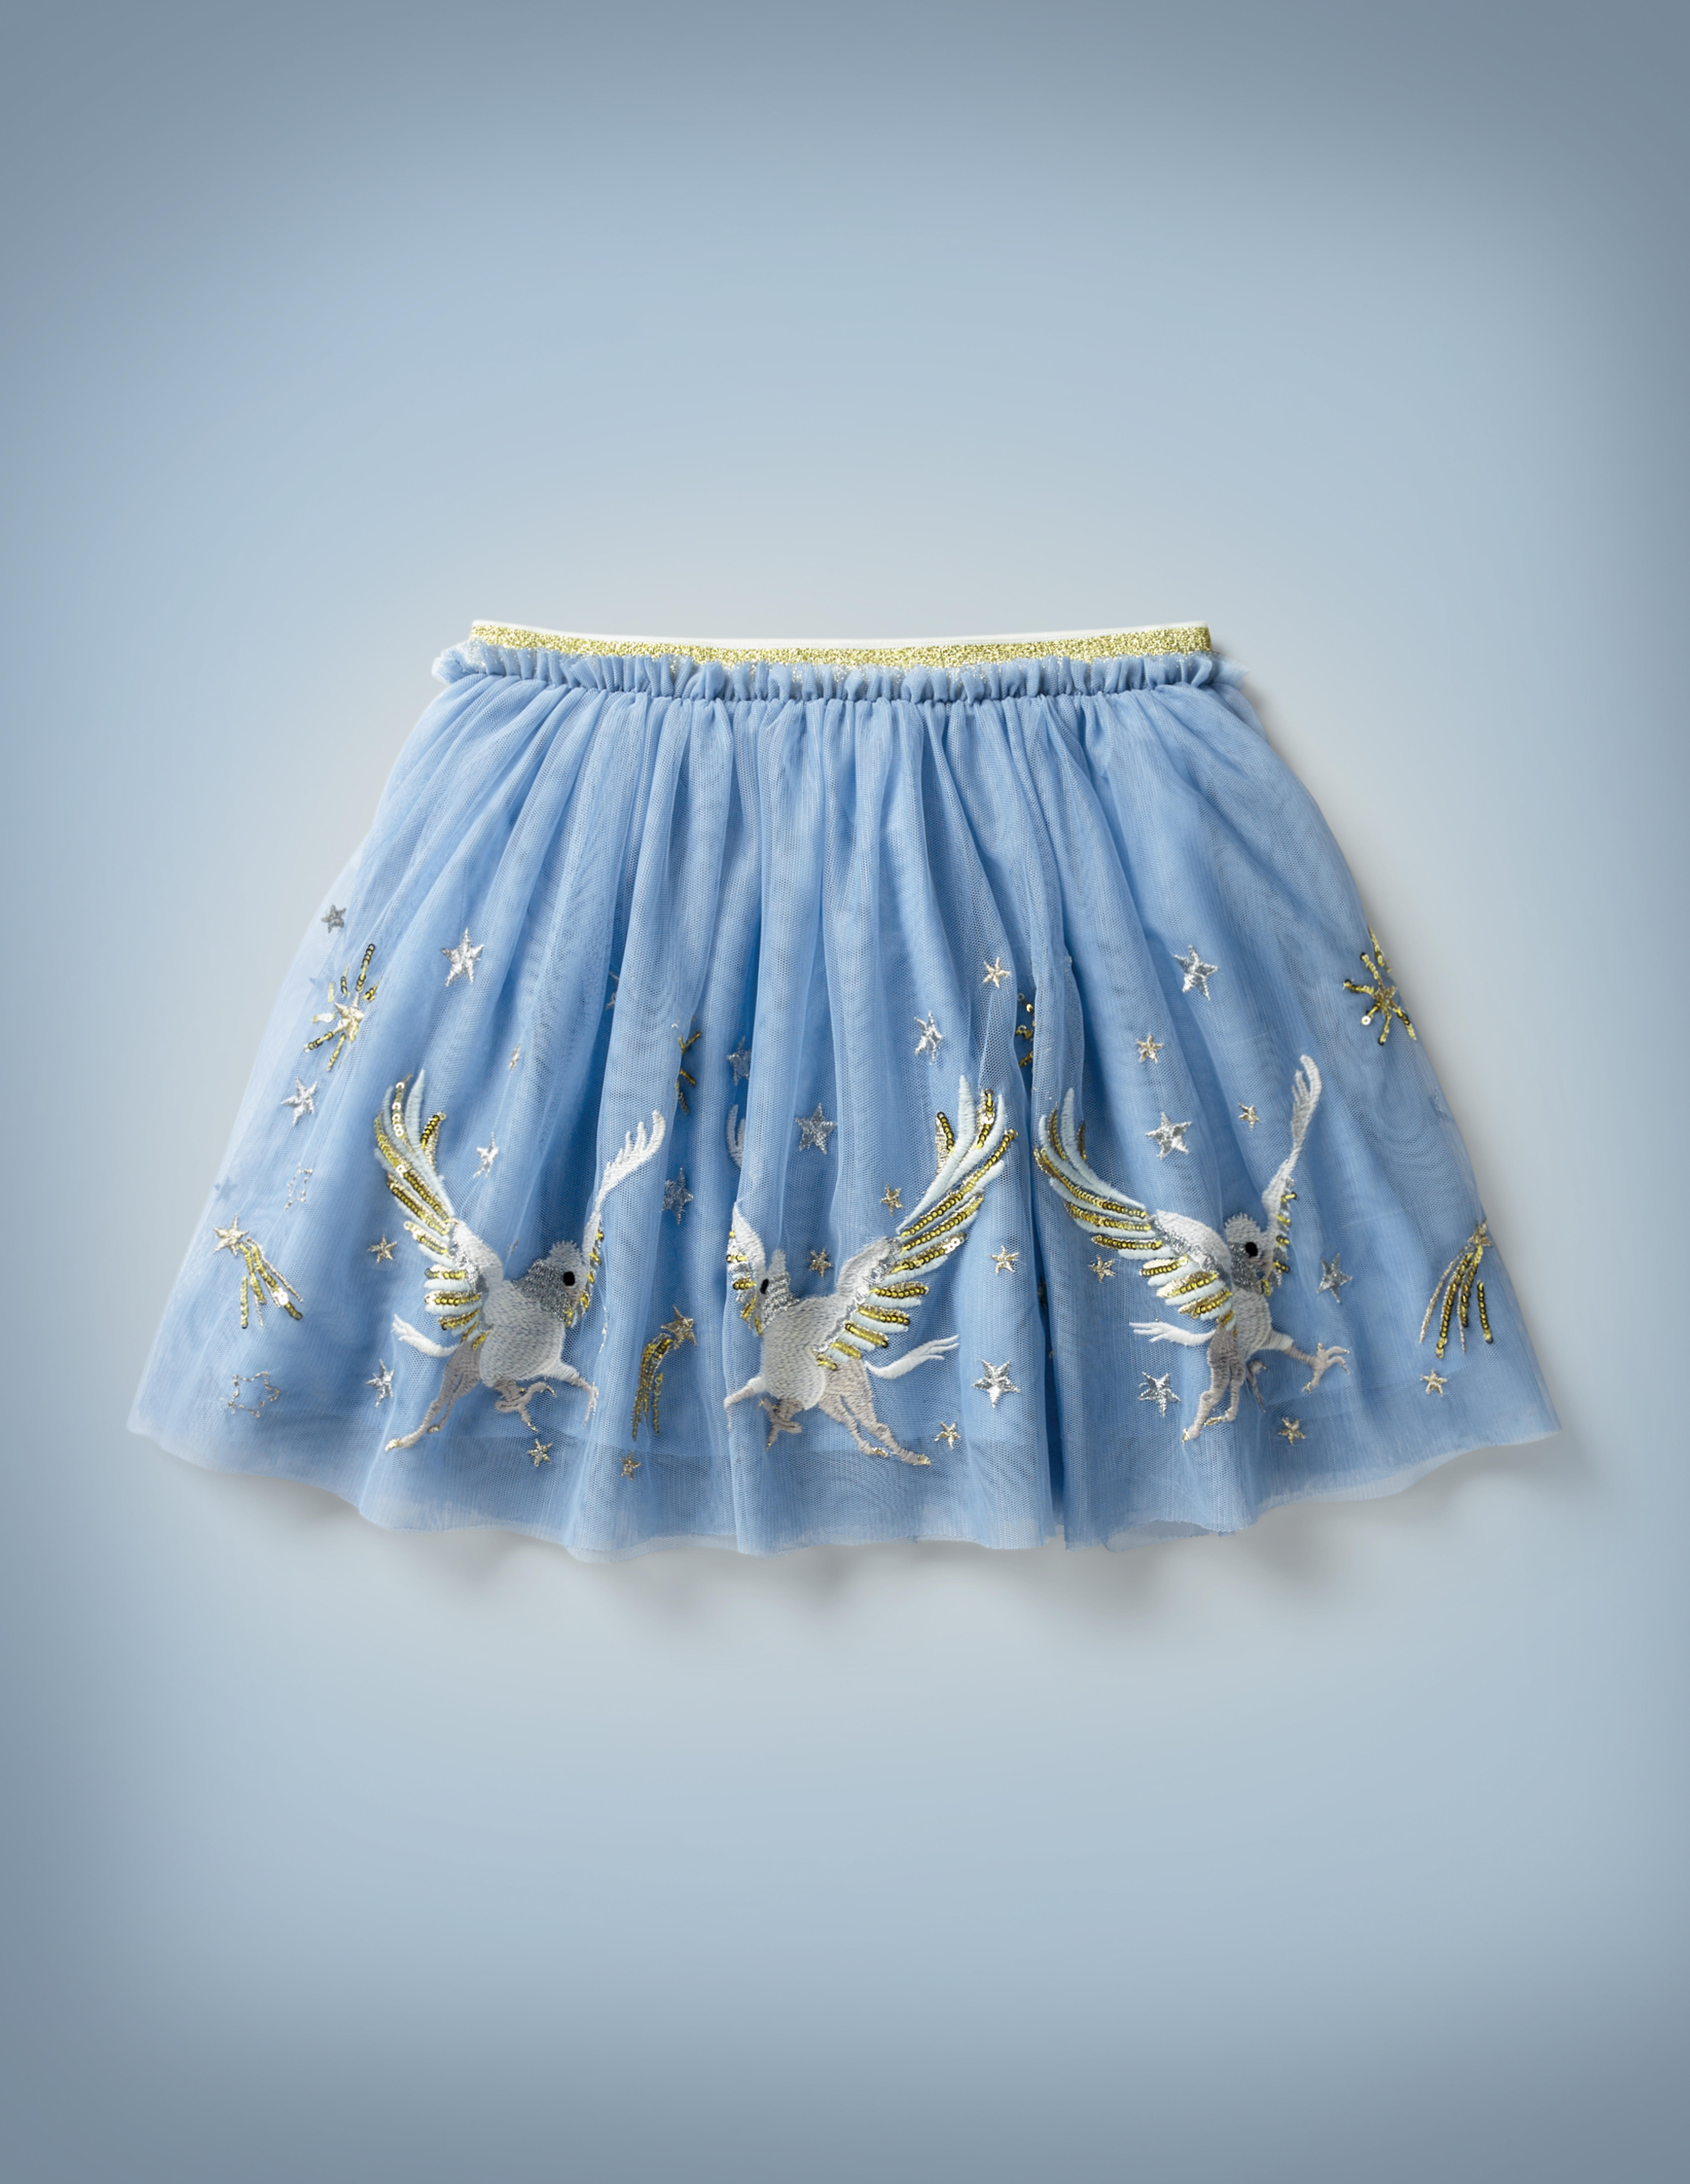 The Mini Boden Hippogriff Tulle Skirt in light blue features a large, repeating design of a hippogriff flying among the stars near its hem. It retails at £40.